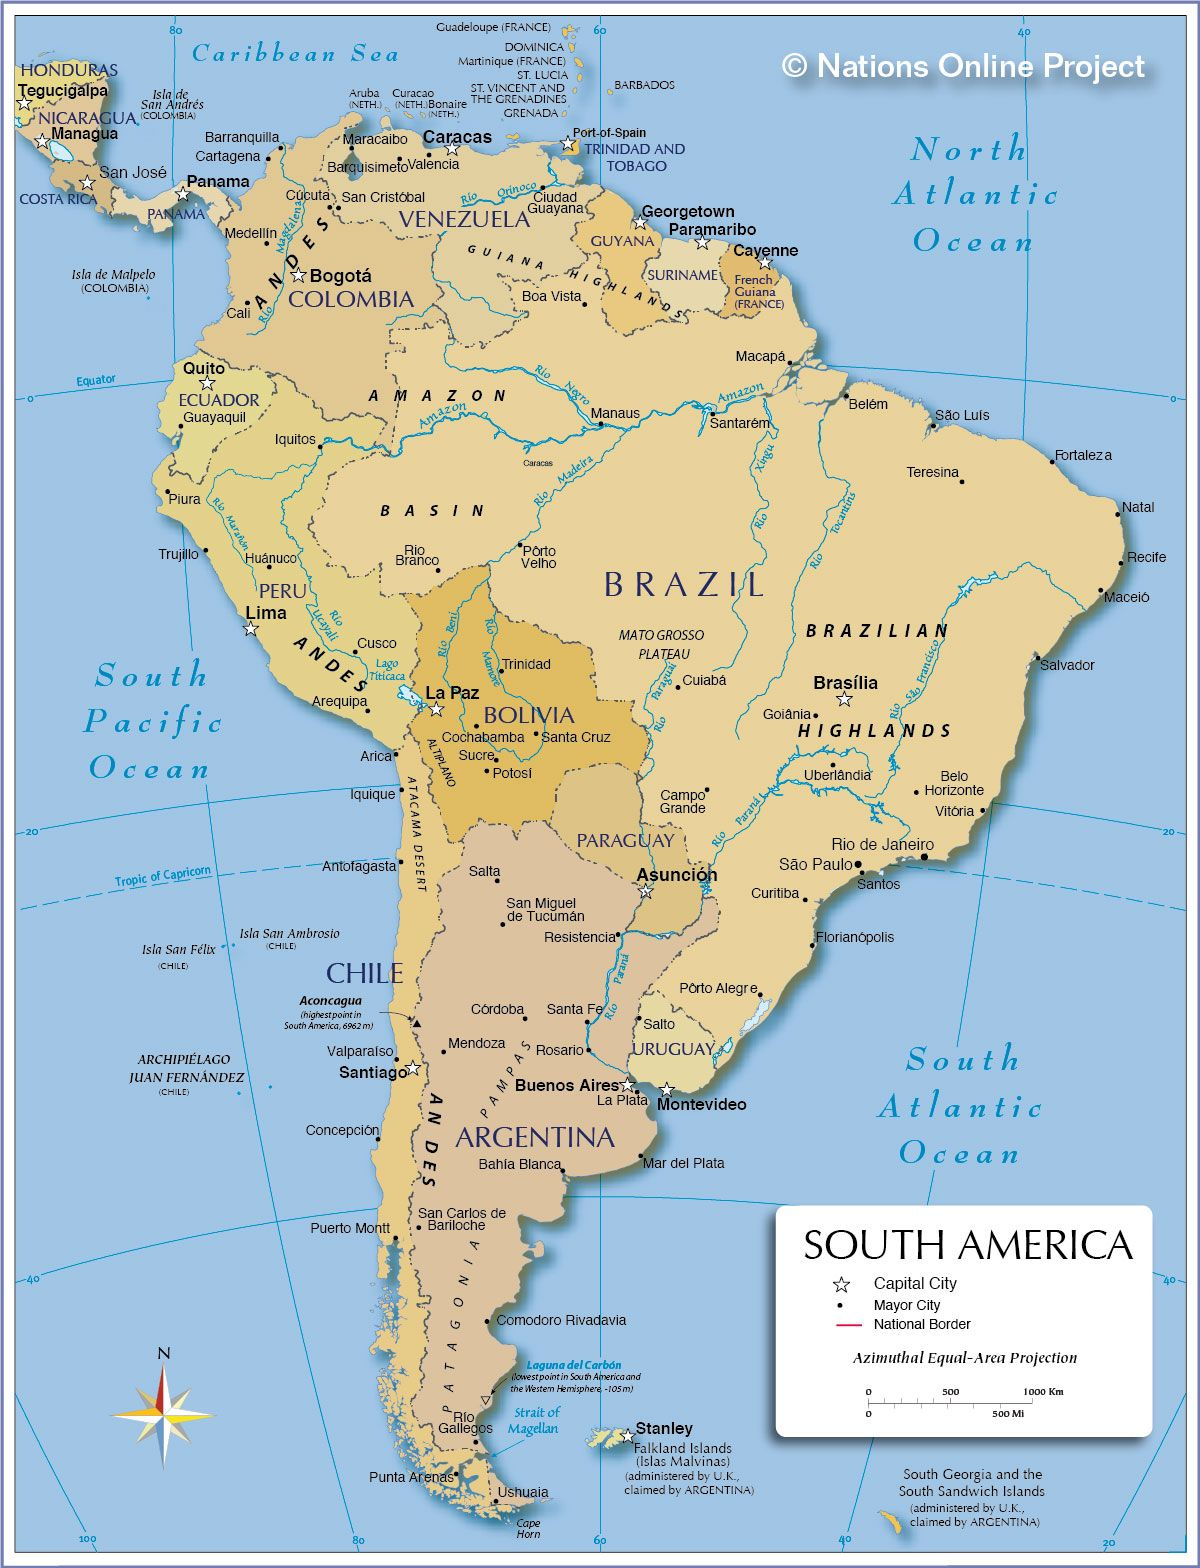 Political Map Of South America  Px Nations Online Project - Picture of map of united states with rivers and lakes labeled